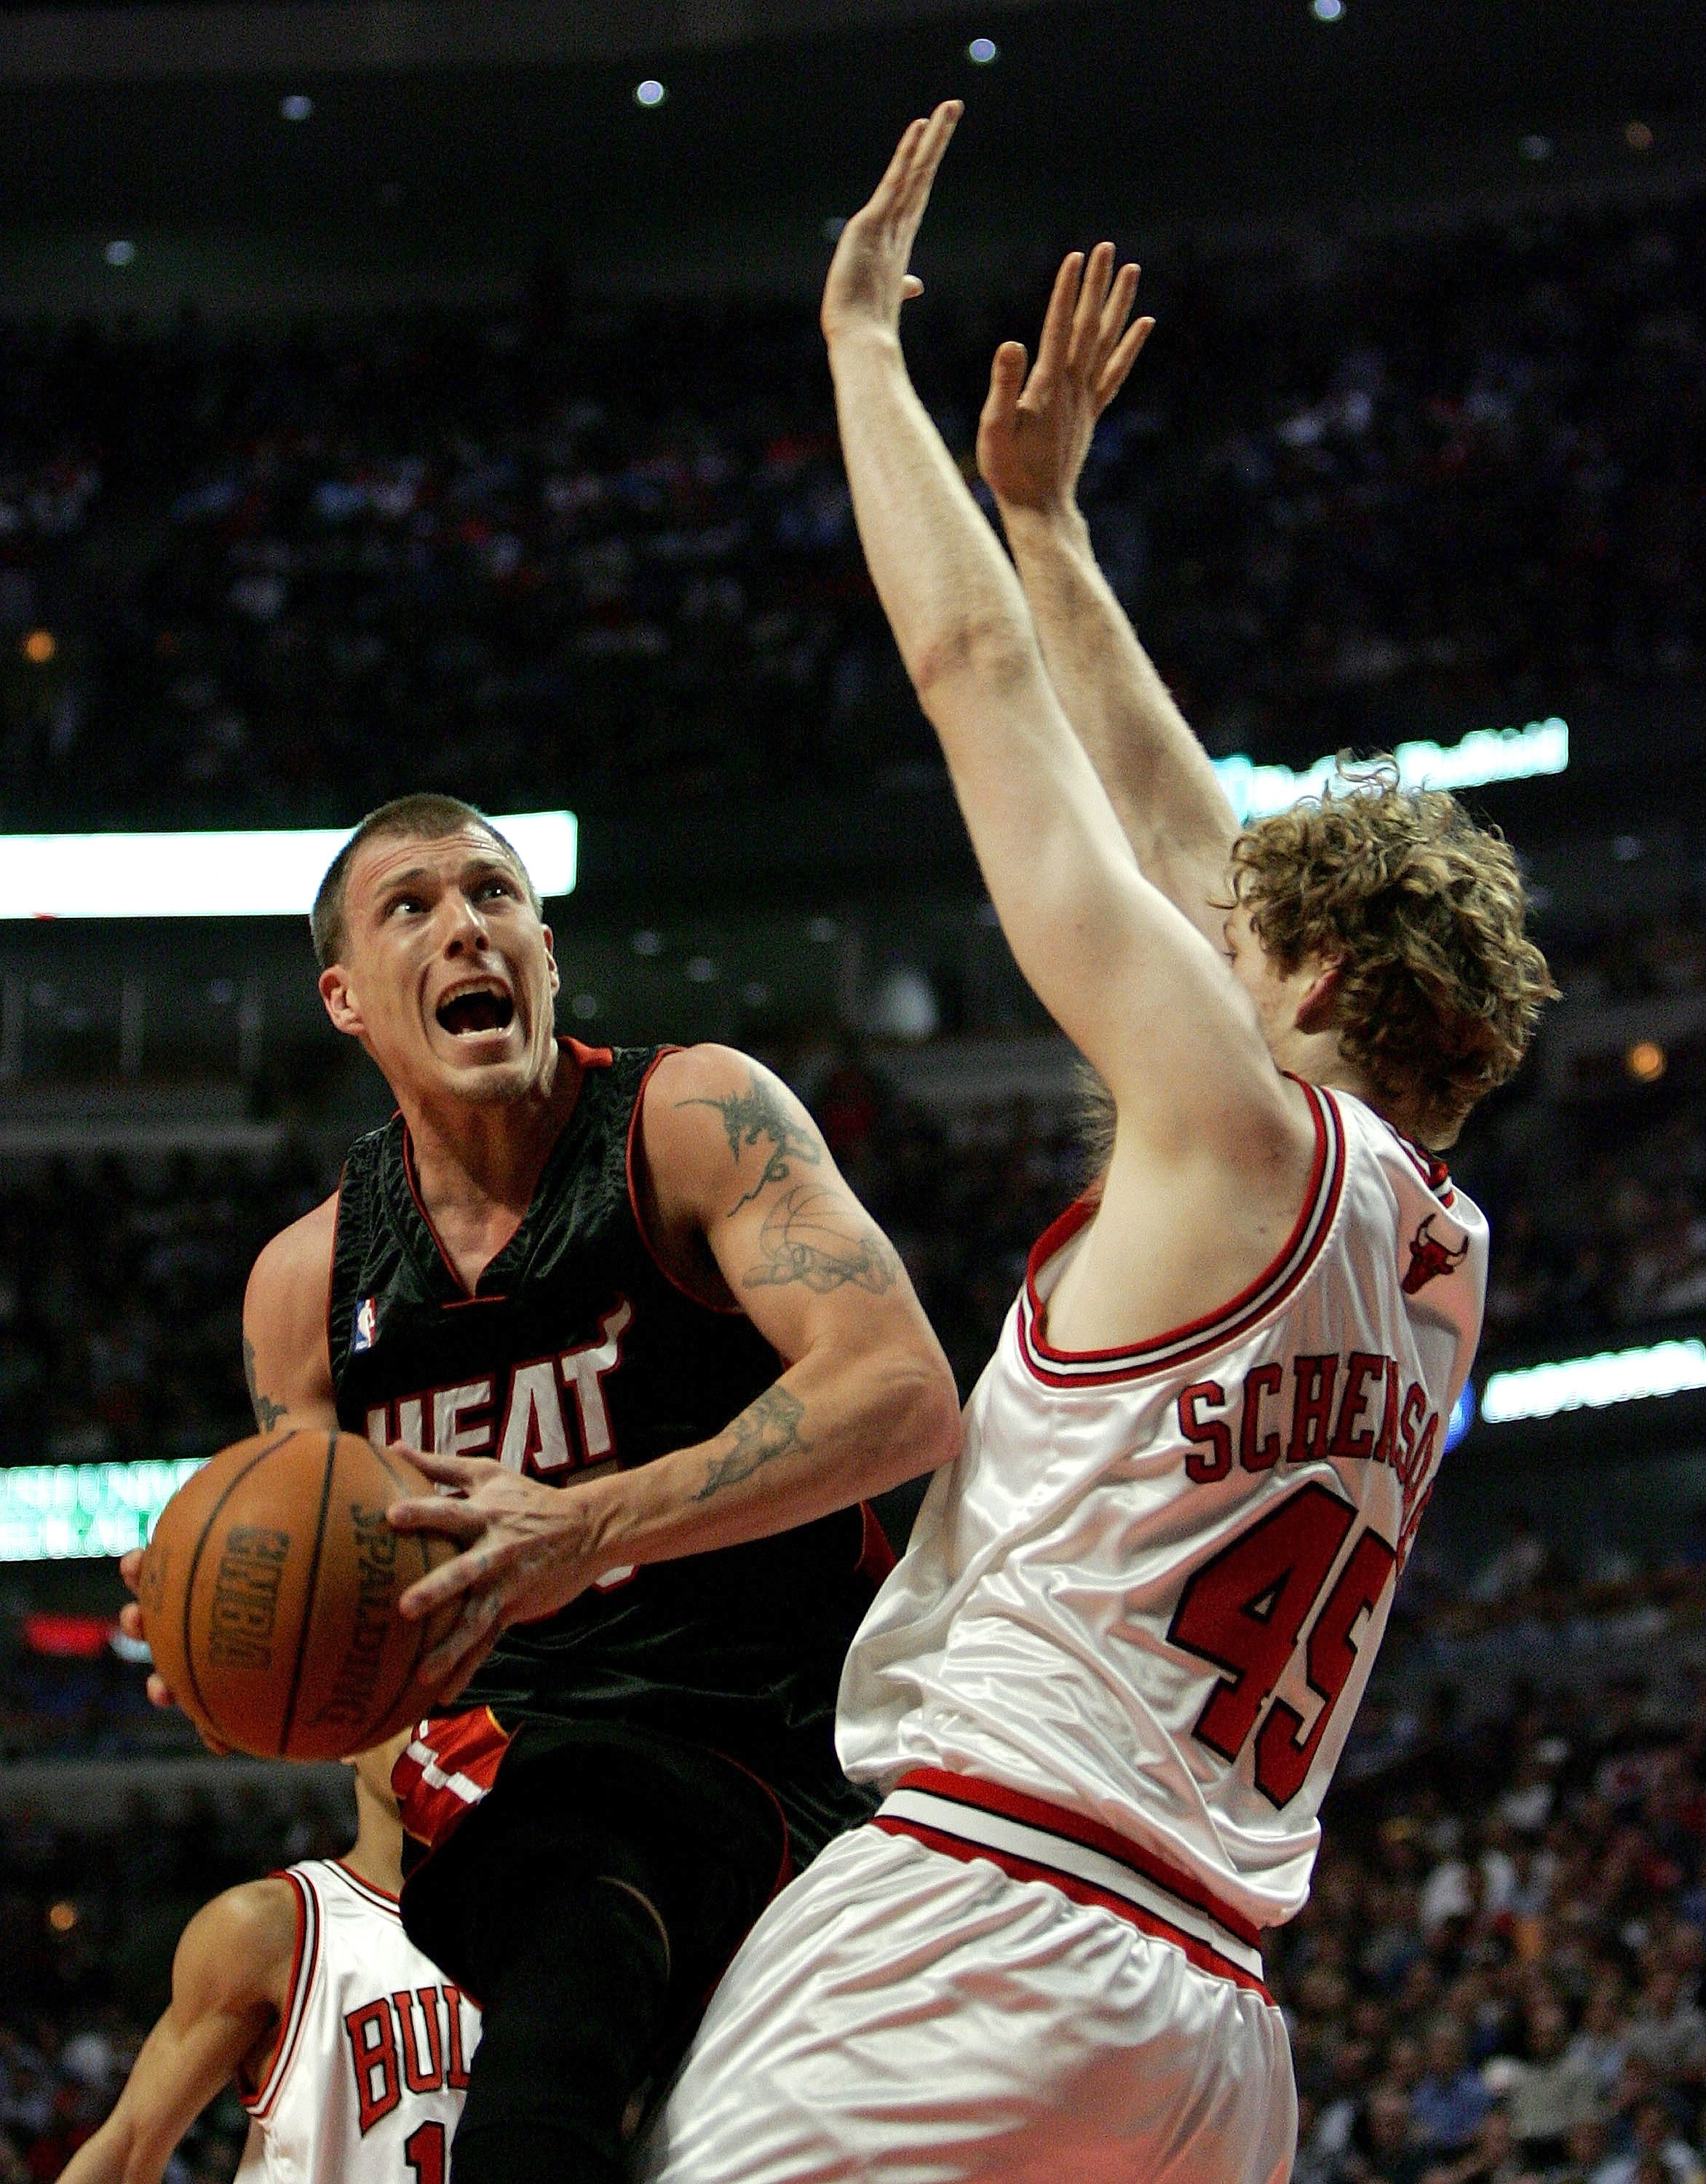 CHICAGO - APRIL 27:  Jason Williams #55 of the Miami Heat puts up a shot against Luke Schensher #45 of the Chicago Bulls in game three of the Eastern Conference Quarterfinals during the 2006 NBA Playoffs on April 27, 2006 at the United Center in Chicago,